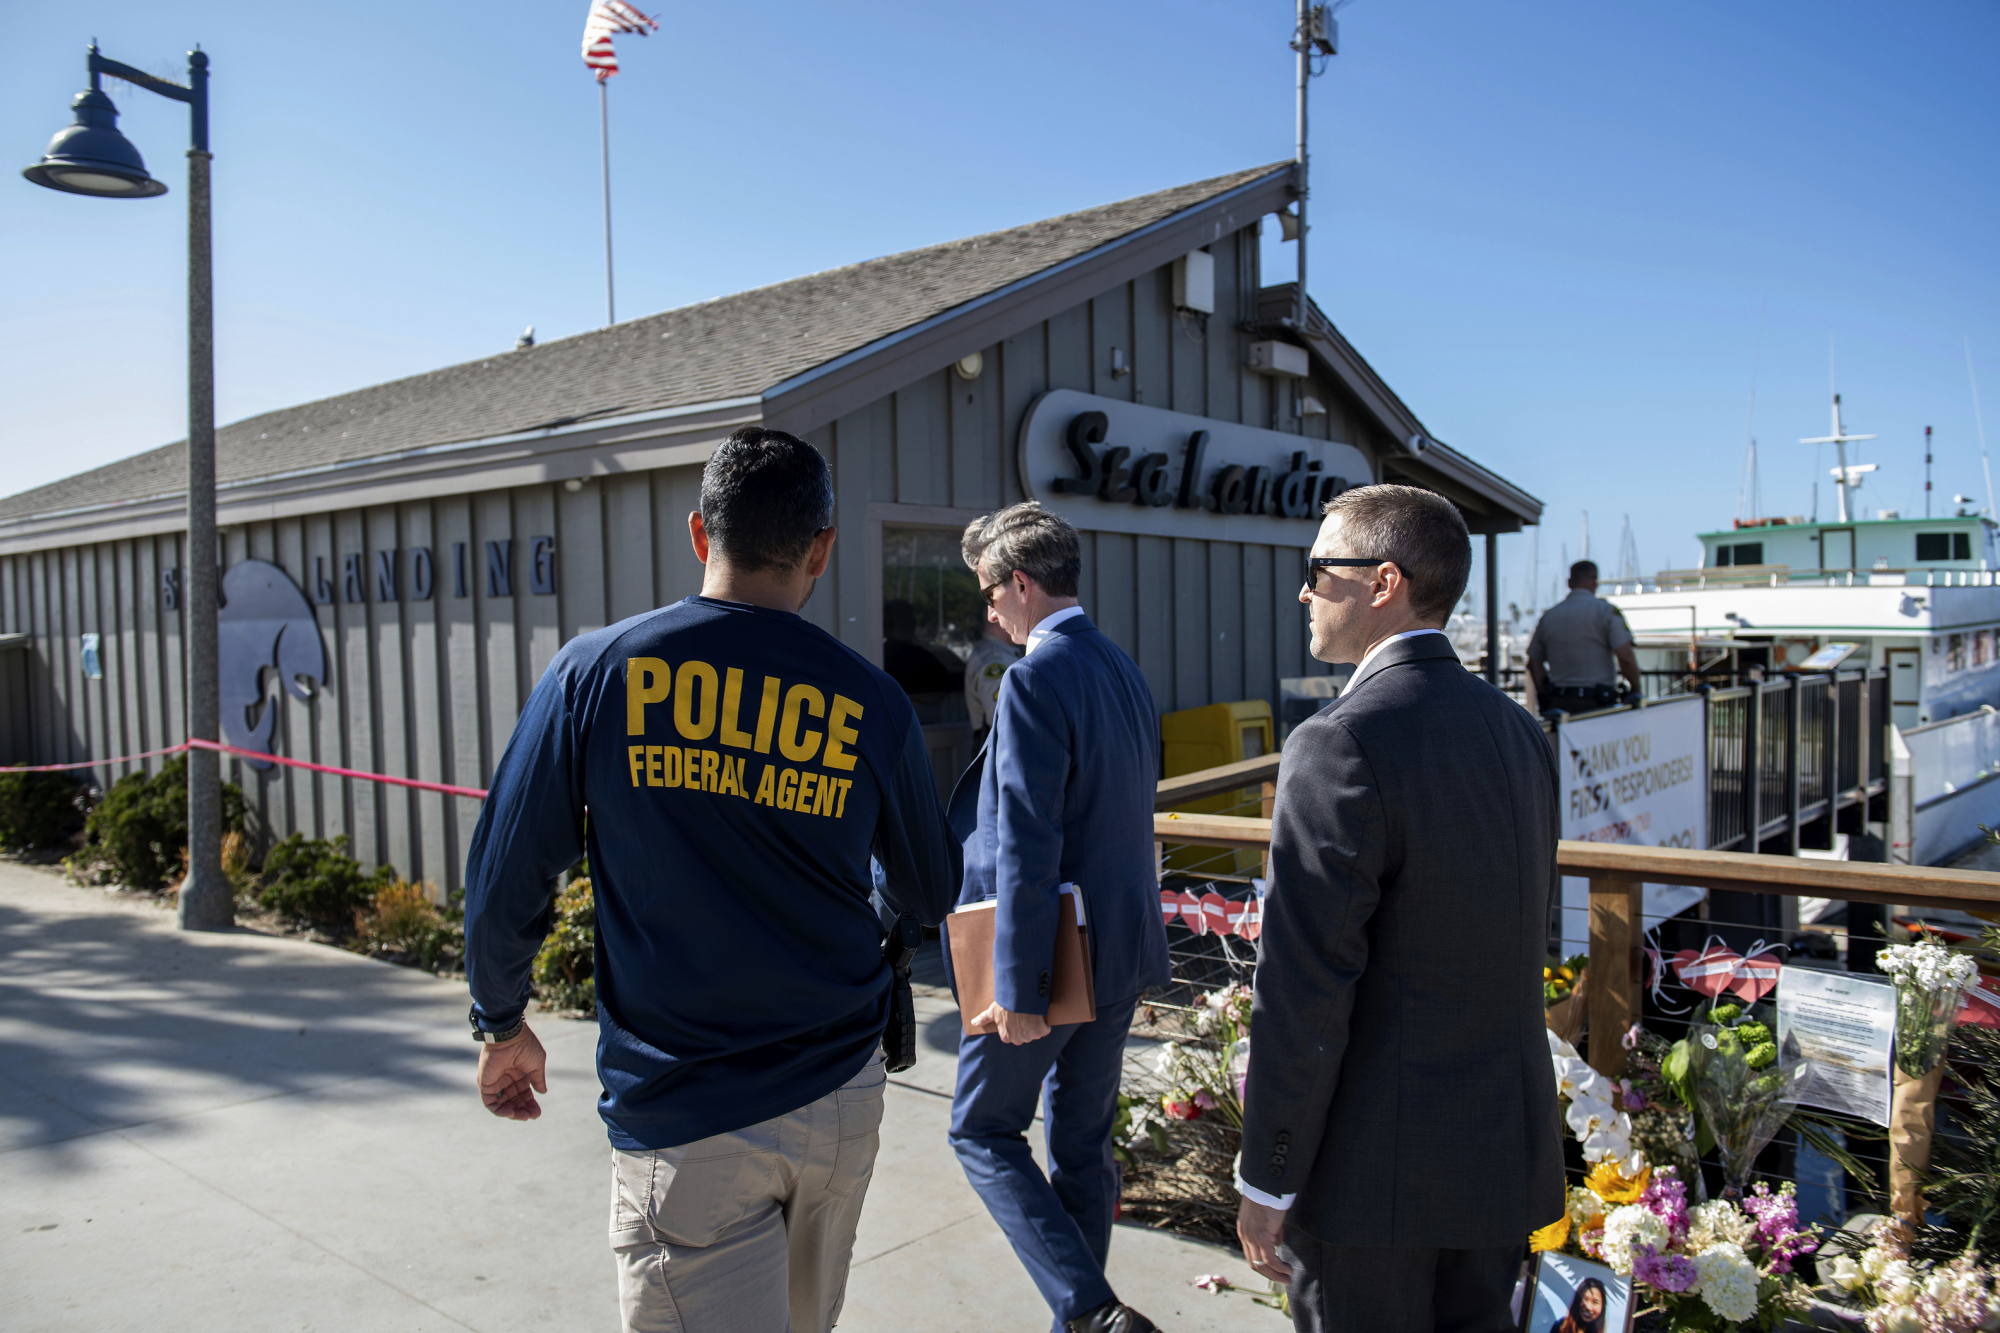 Federal agents walk past a memorial for the victims of the Conception dive boat fire on the Santa Barbara Harbor in Santa Barbara, California. Sunday. Authorities served search warrants Sunday at the Southern California company that owned the scuba diving boat that caught fire and killed dozens of people last week. | AP